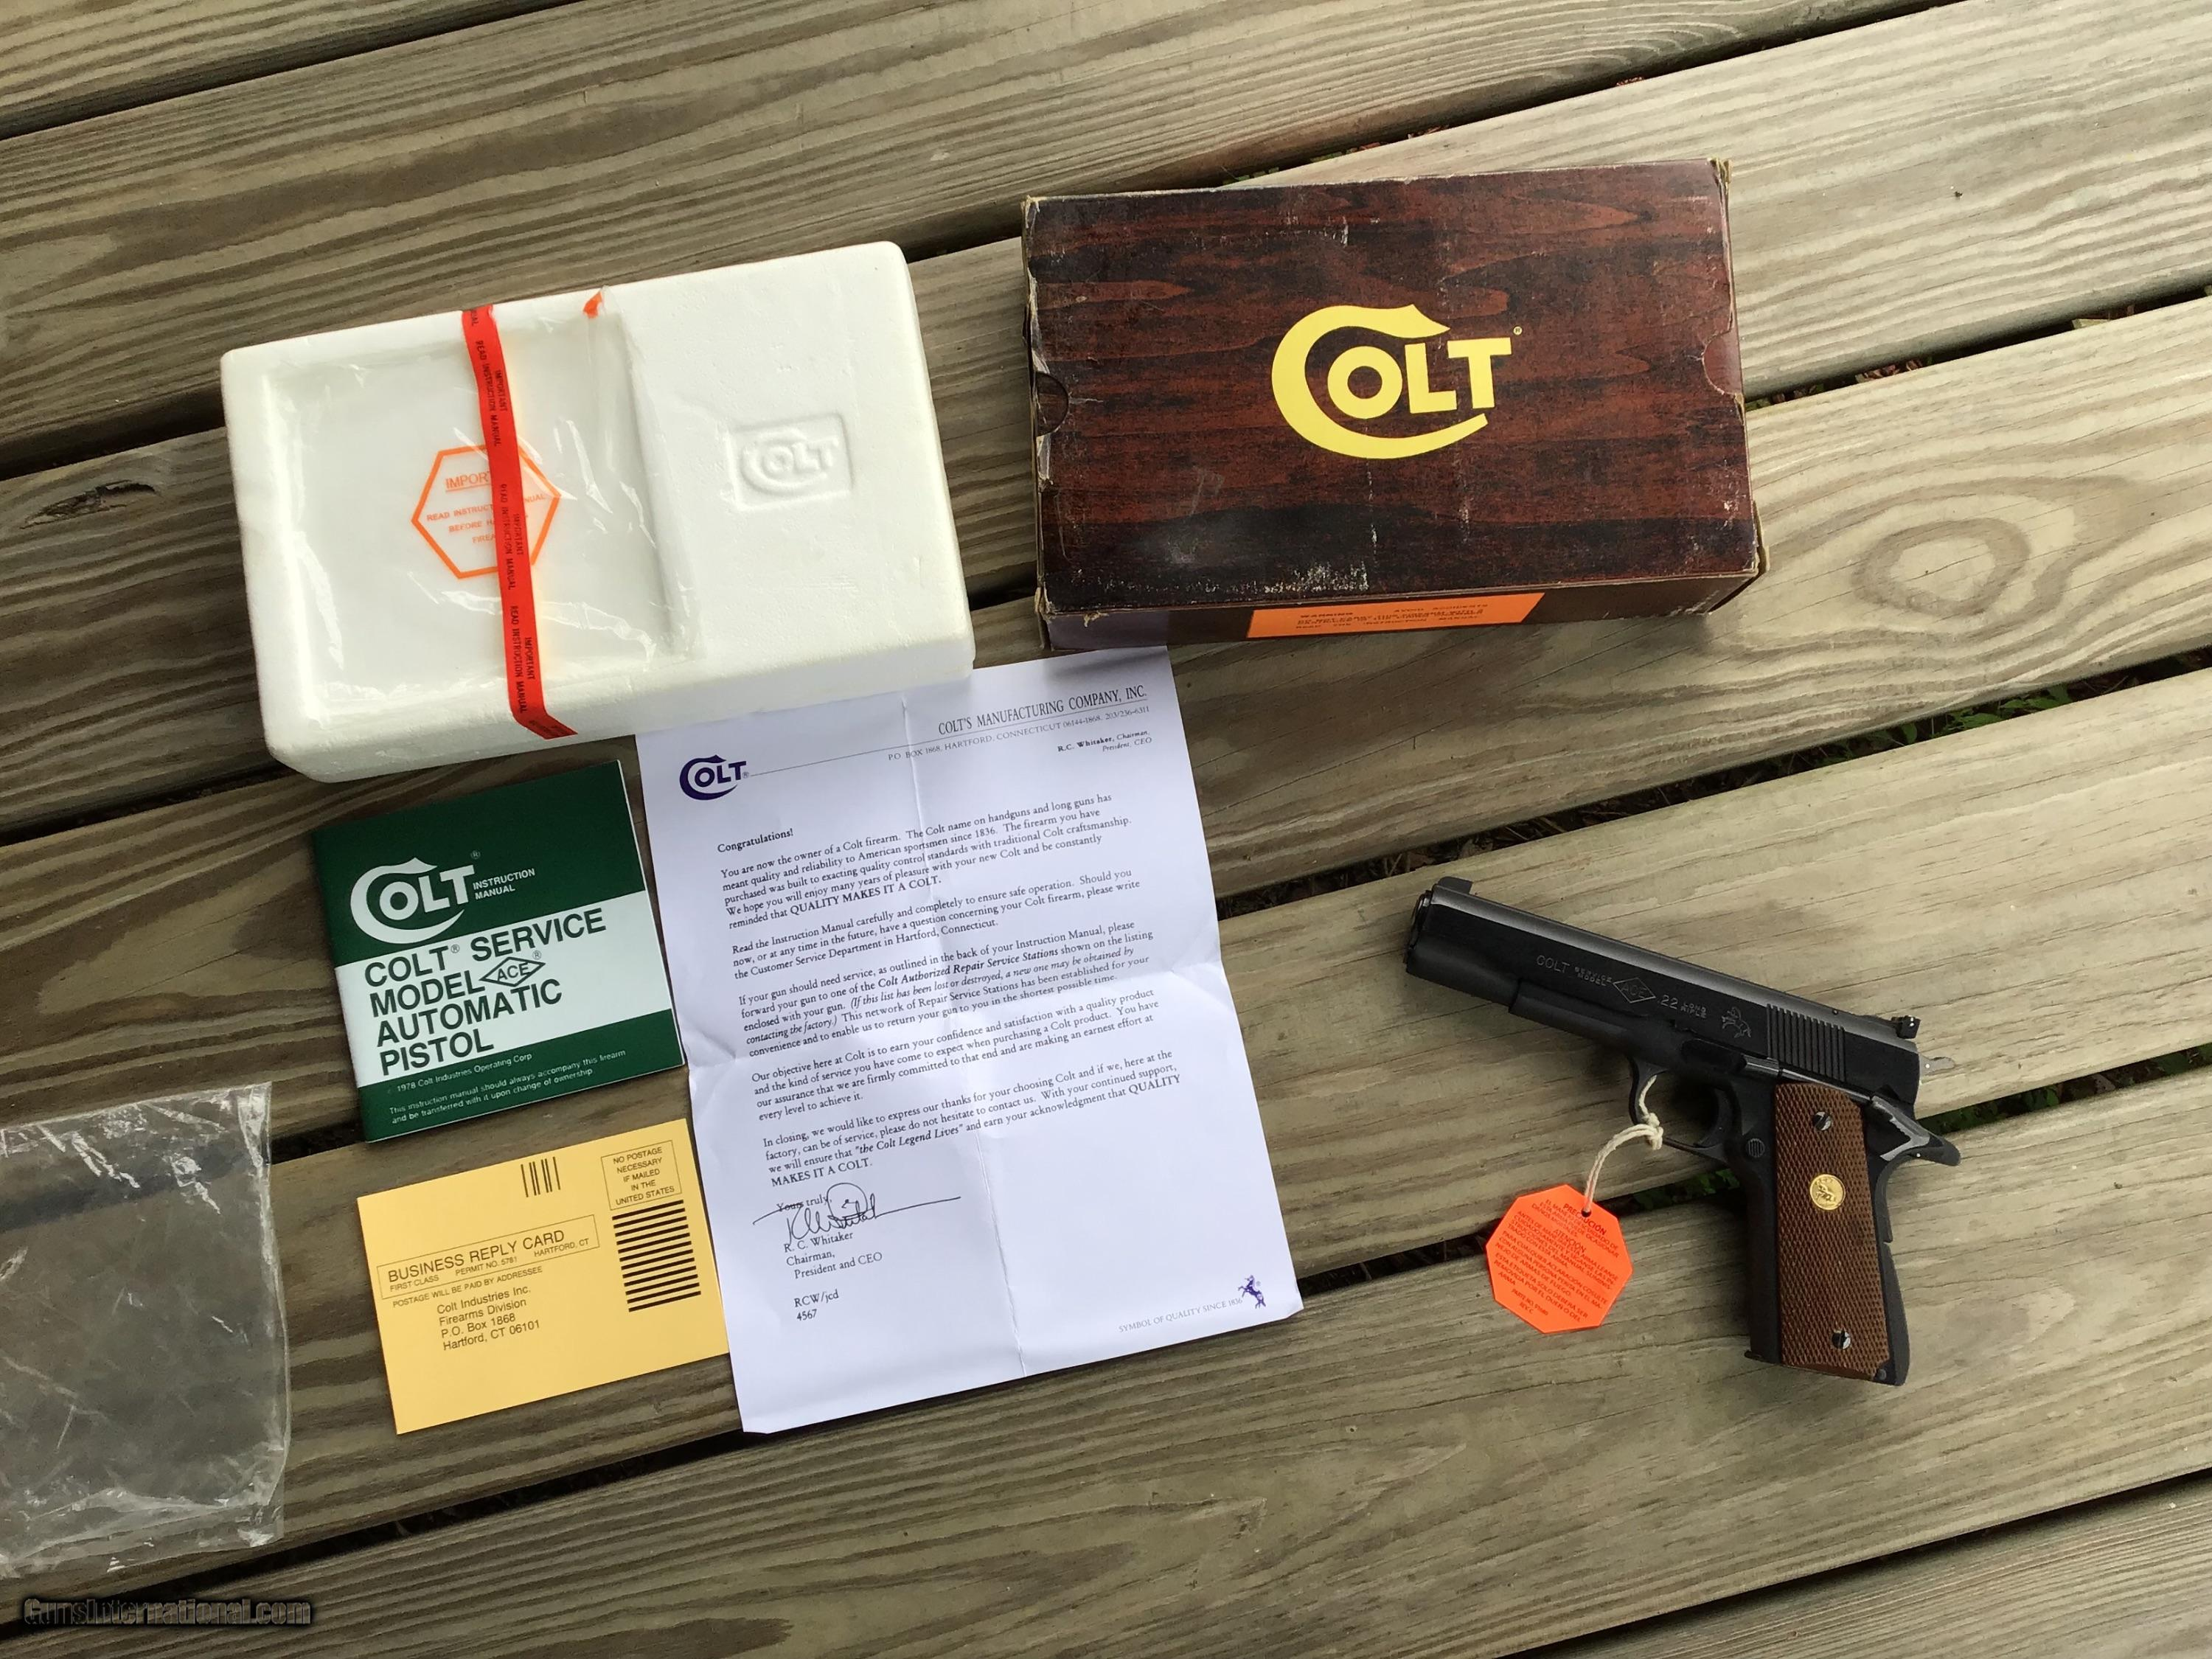 COLT ACE 22LR , 99% COND  IN BOX WITH OWNERS MANUAL, HANG